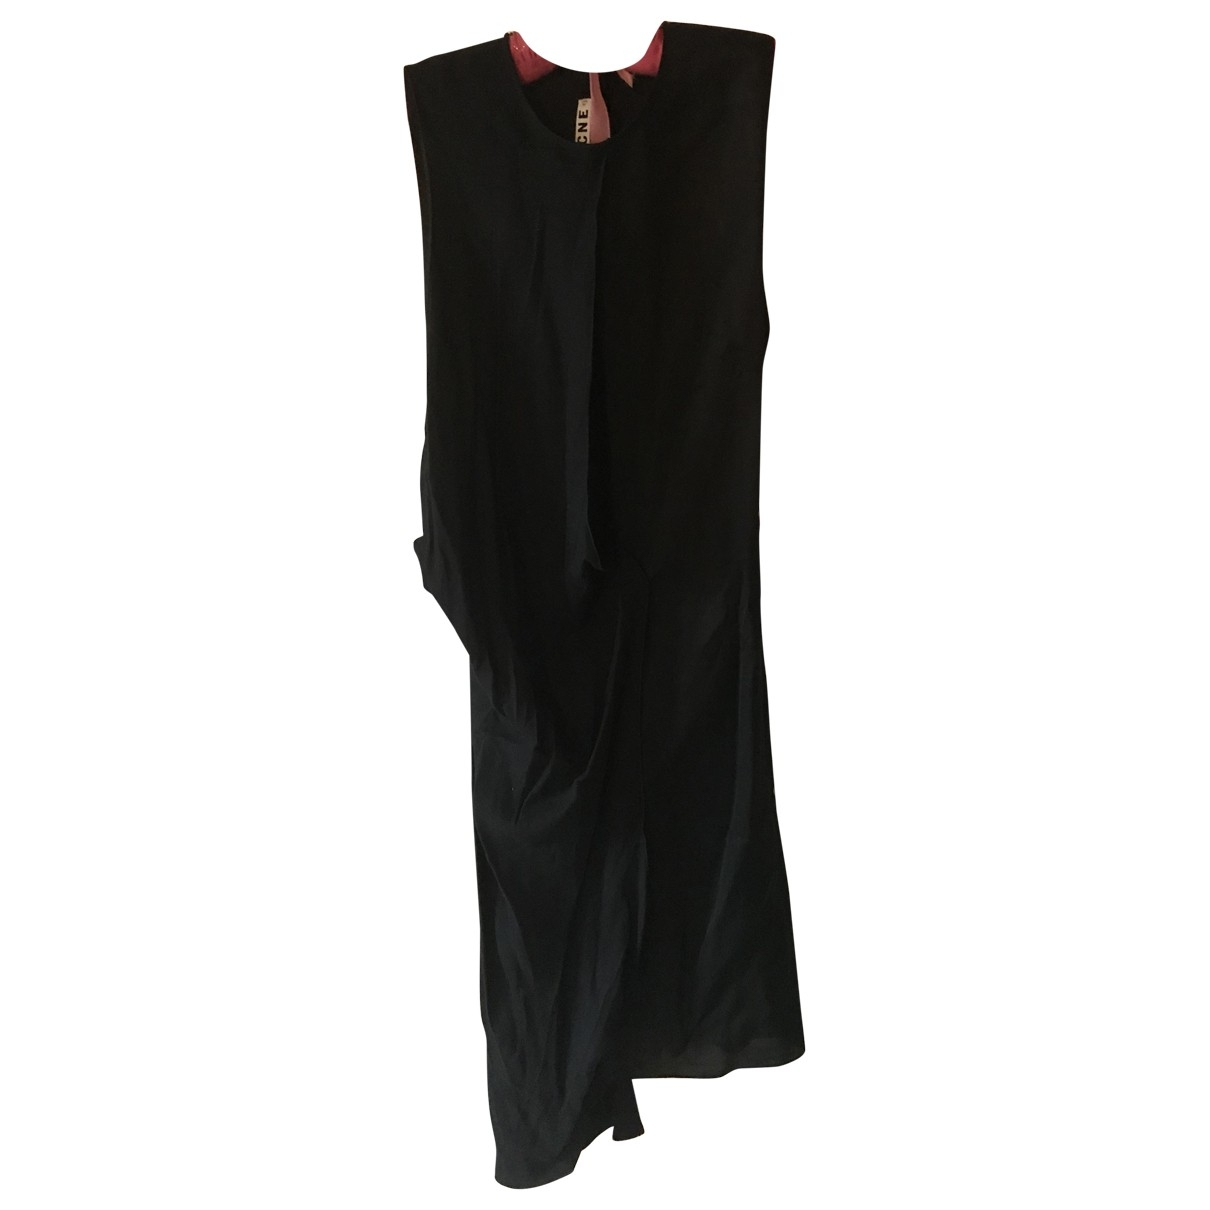 Acne Studios \N Black dress for Women 36 FR